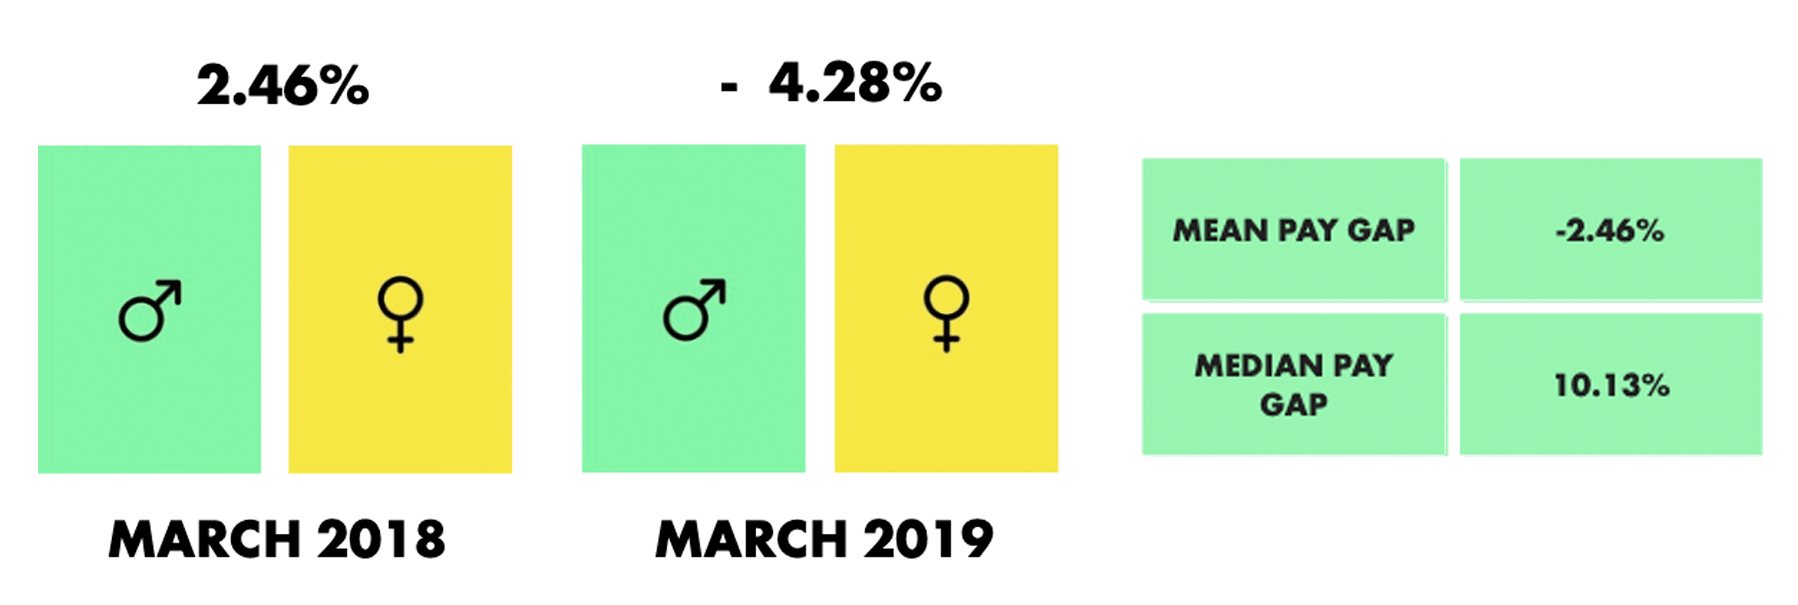 ustwo-gender-pay-gap-2019-03